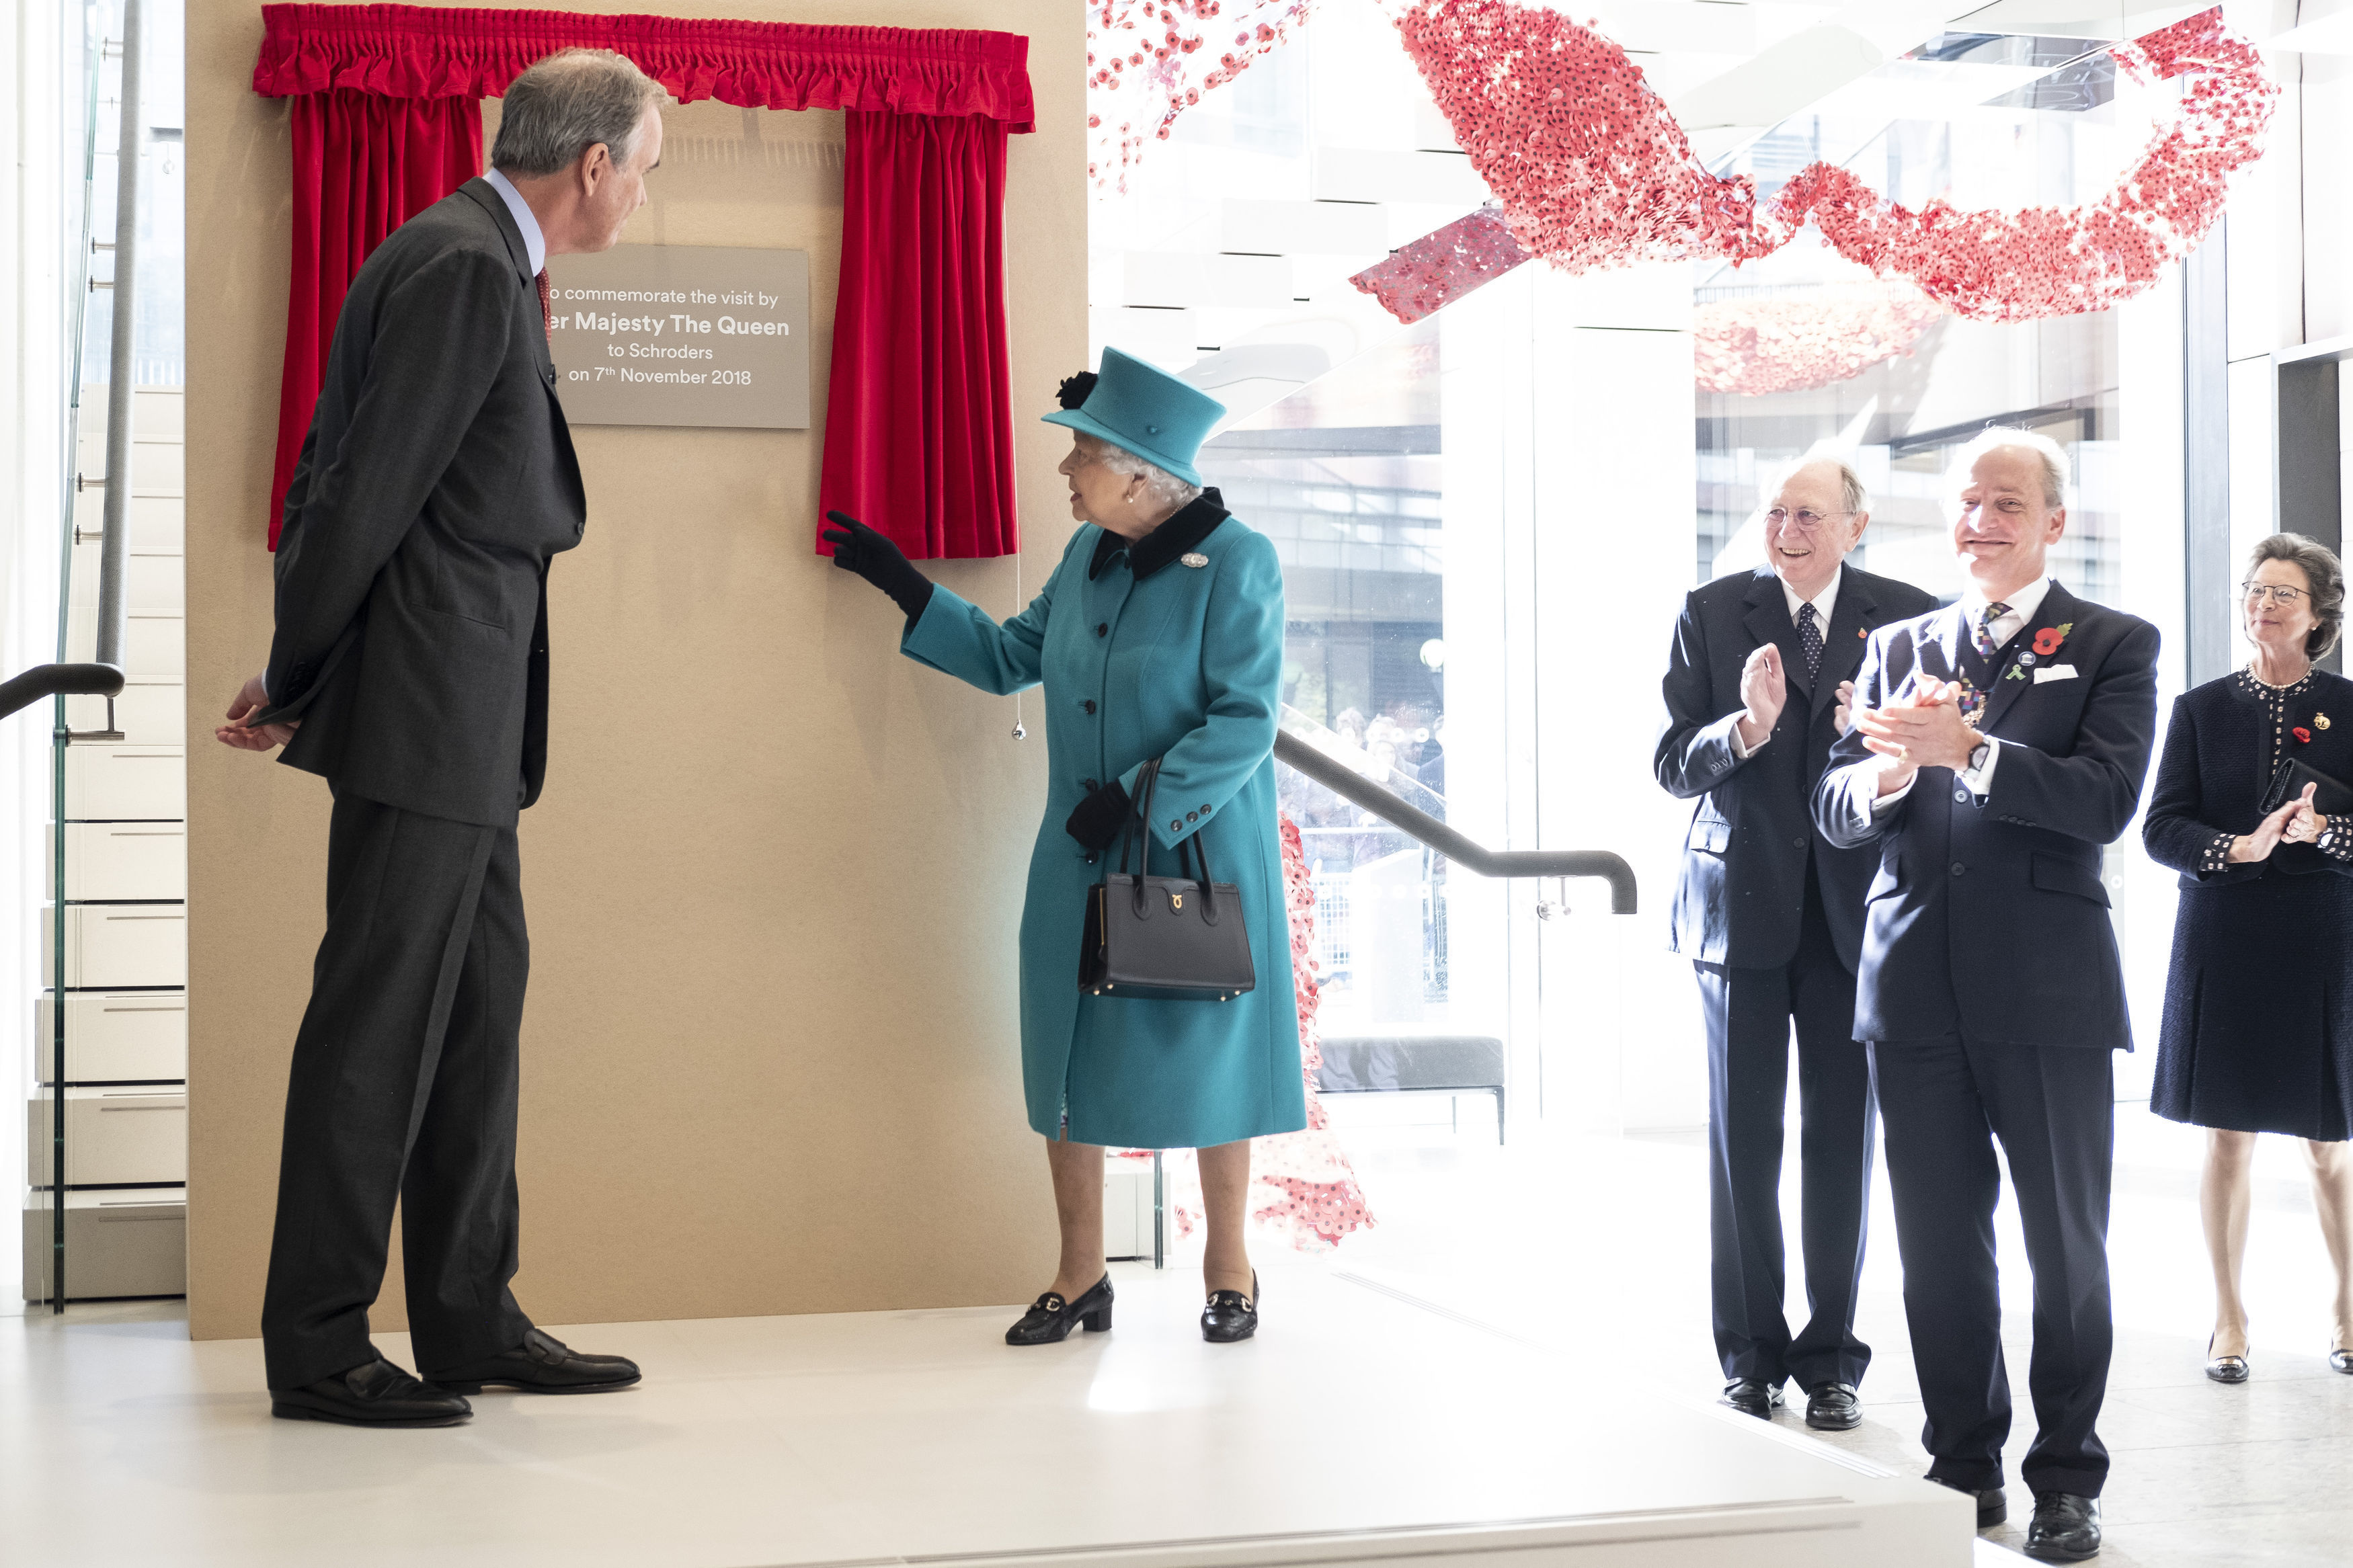 The queen unveils a plaque at Schroders